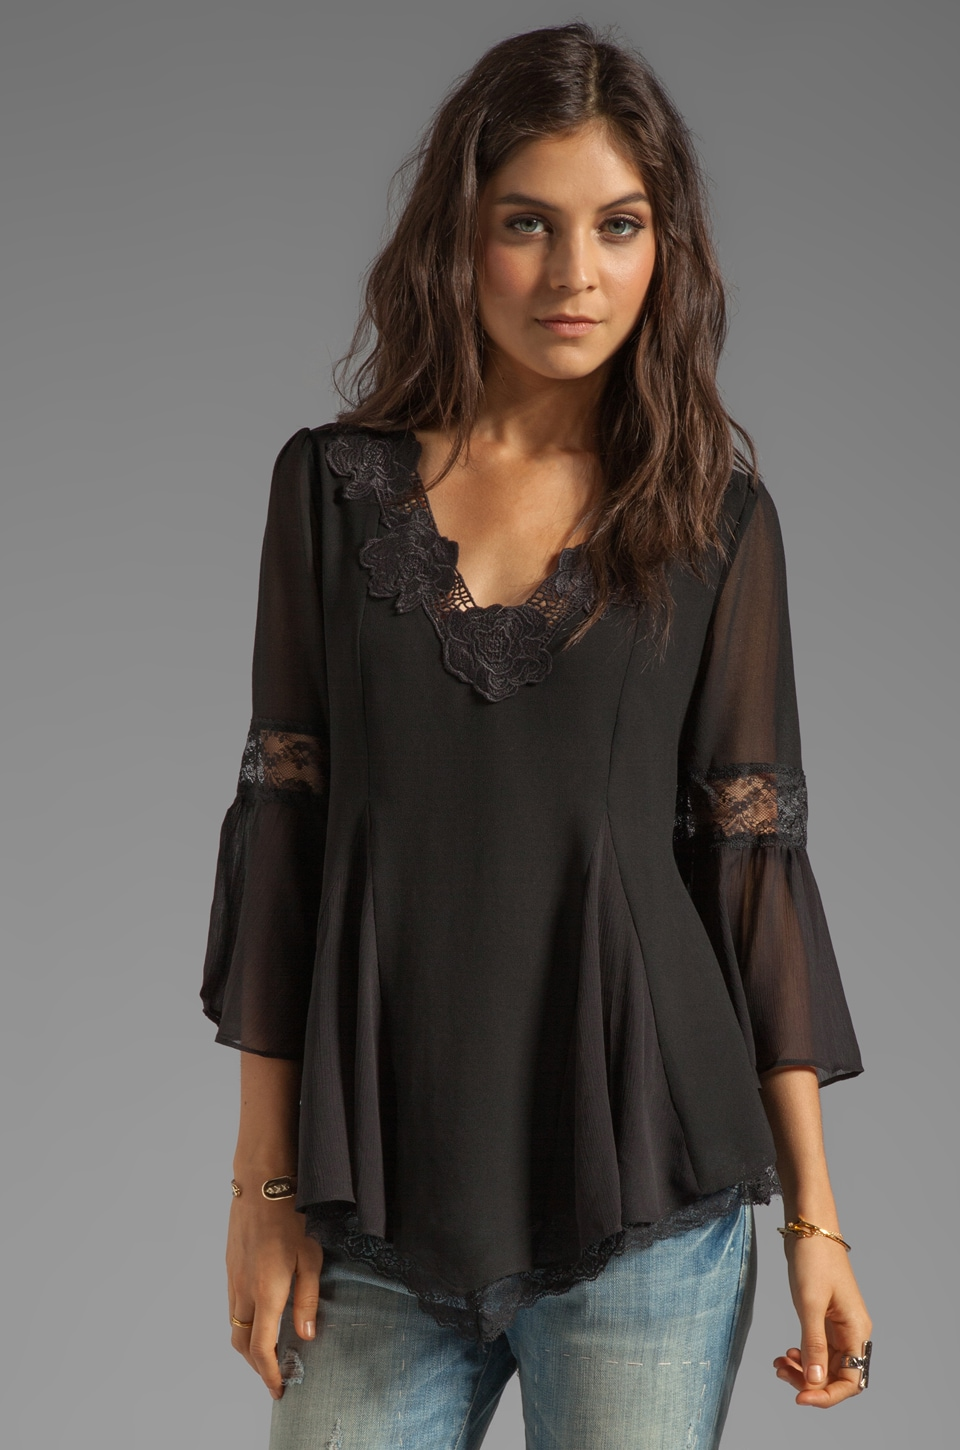 Free People Always In Love Top in Black